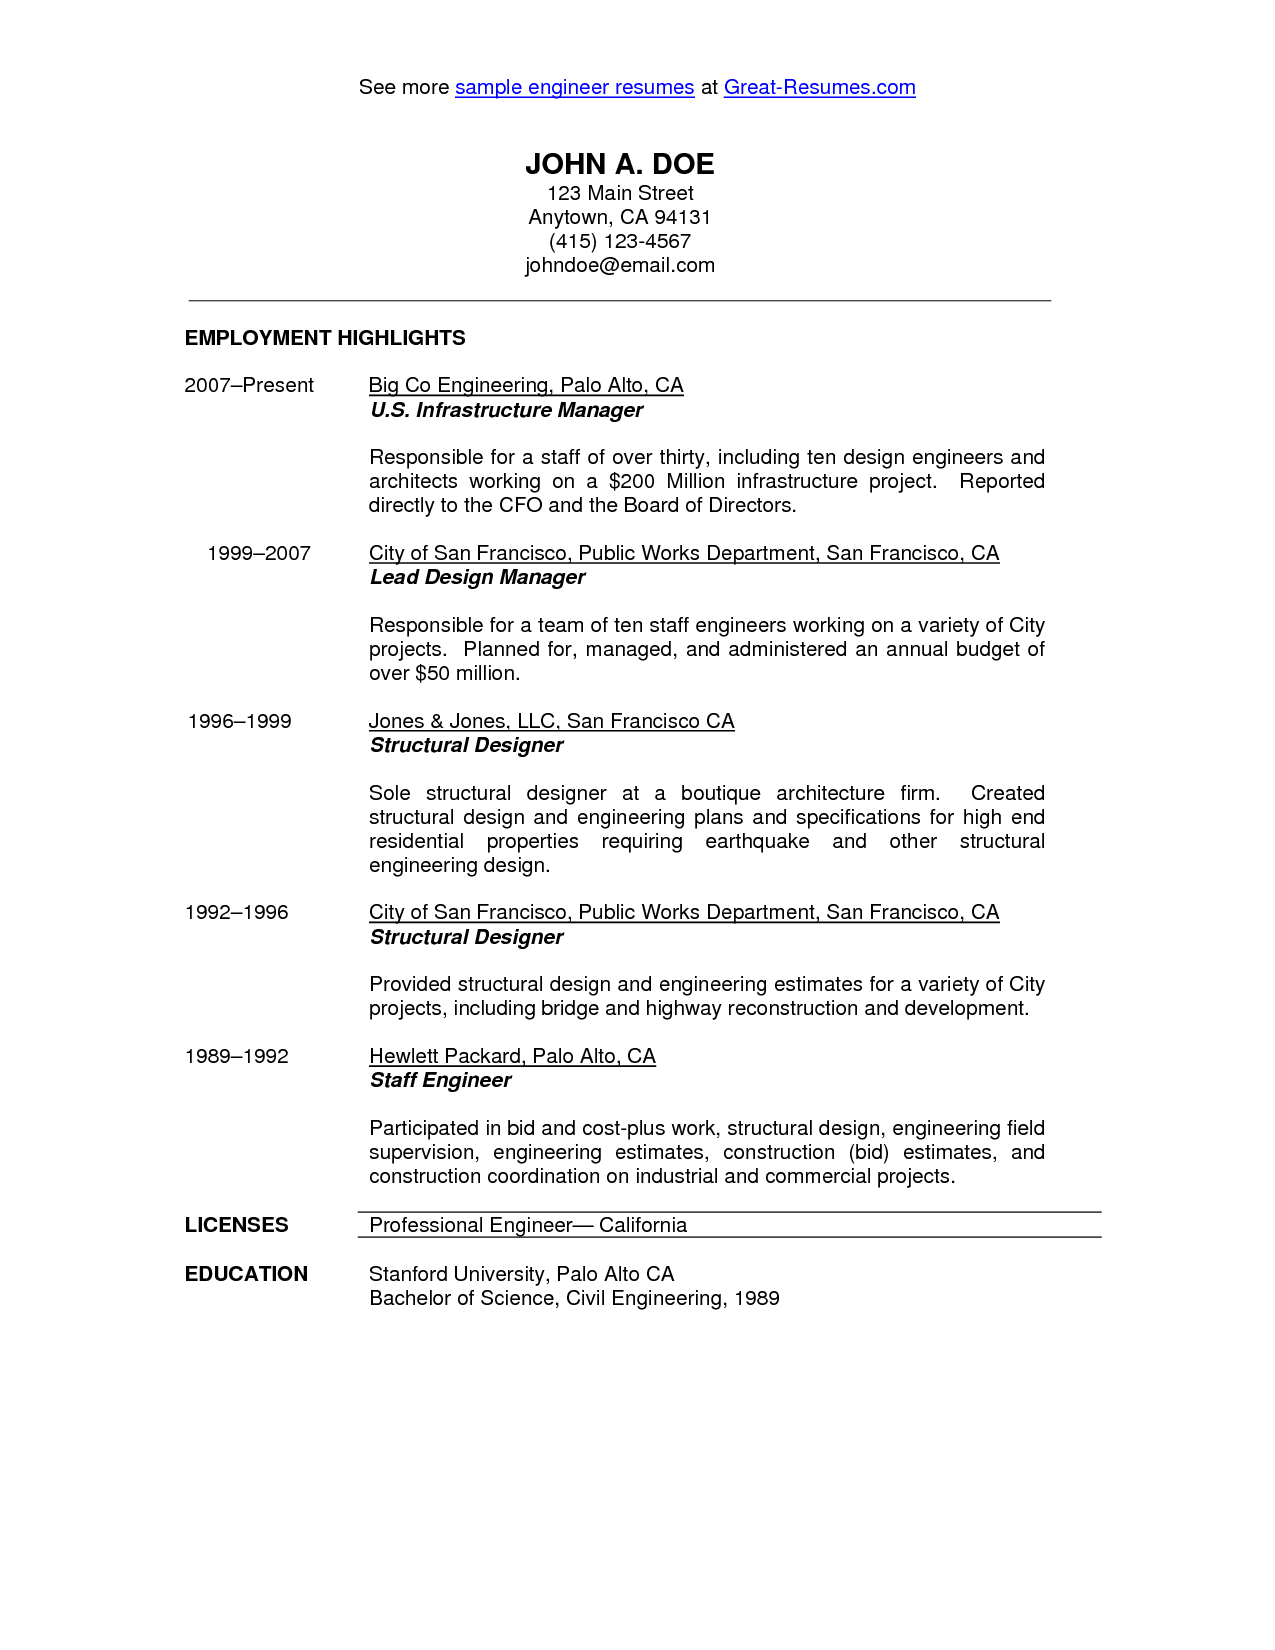 Civil Engineer Resume Sample - Http://Www.Resumecareer.Info/Civil